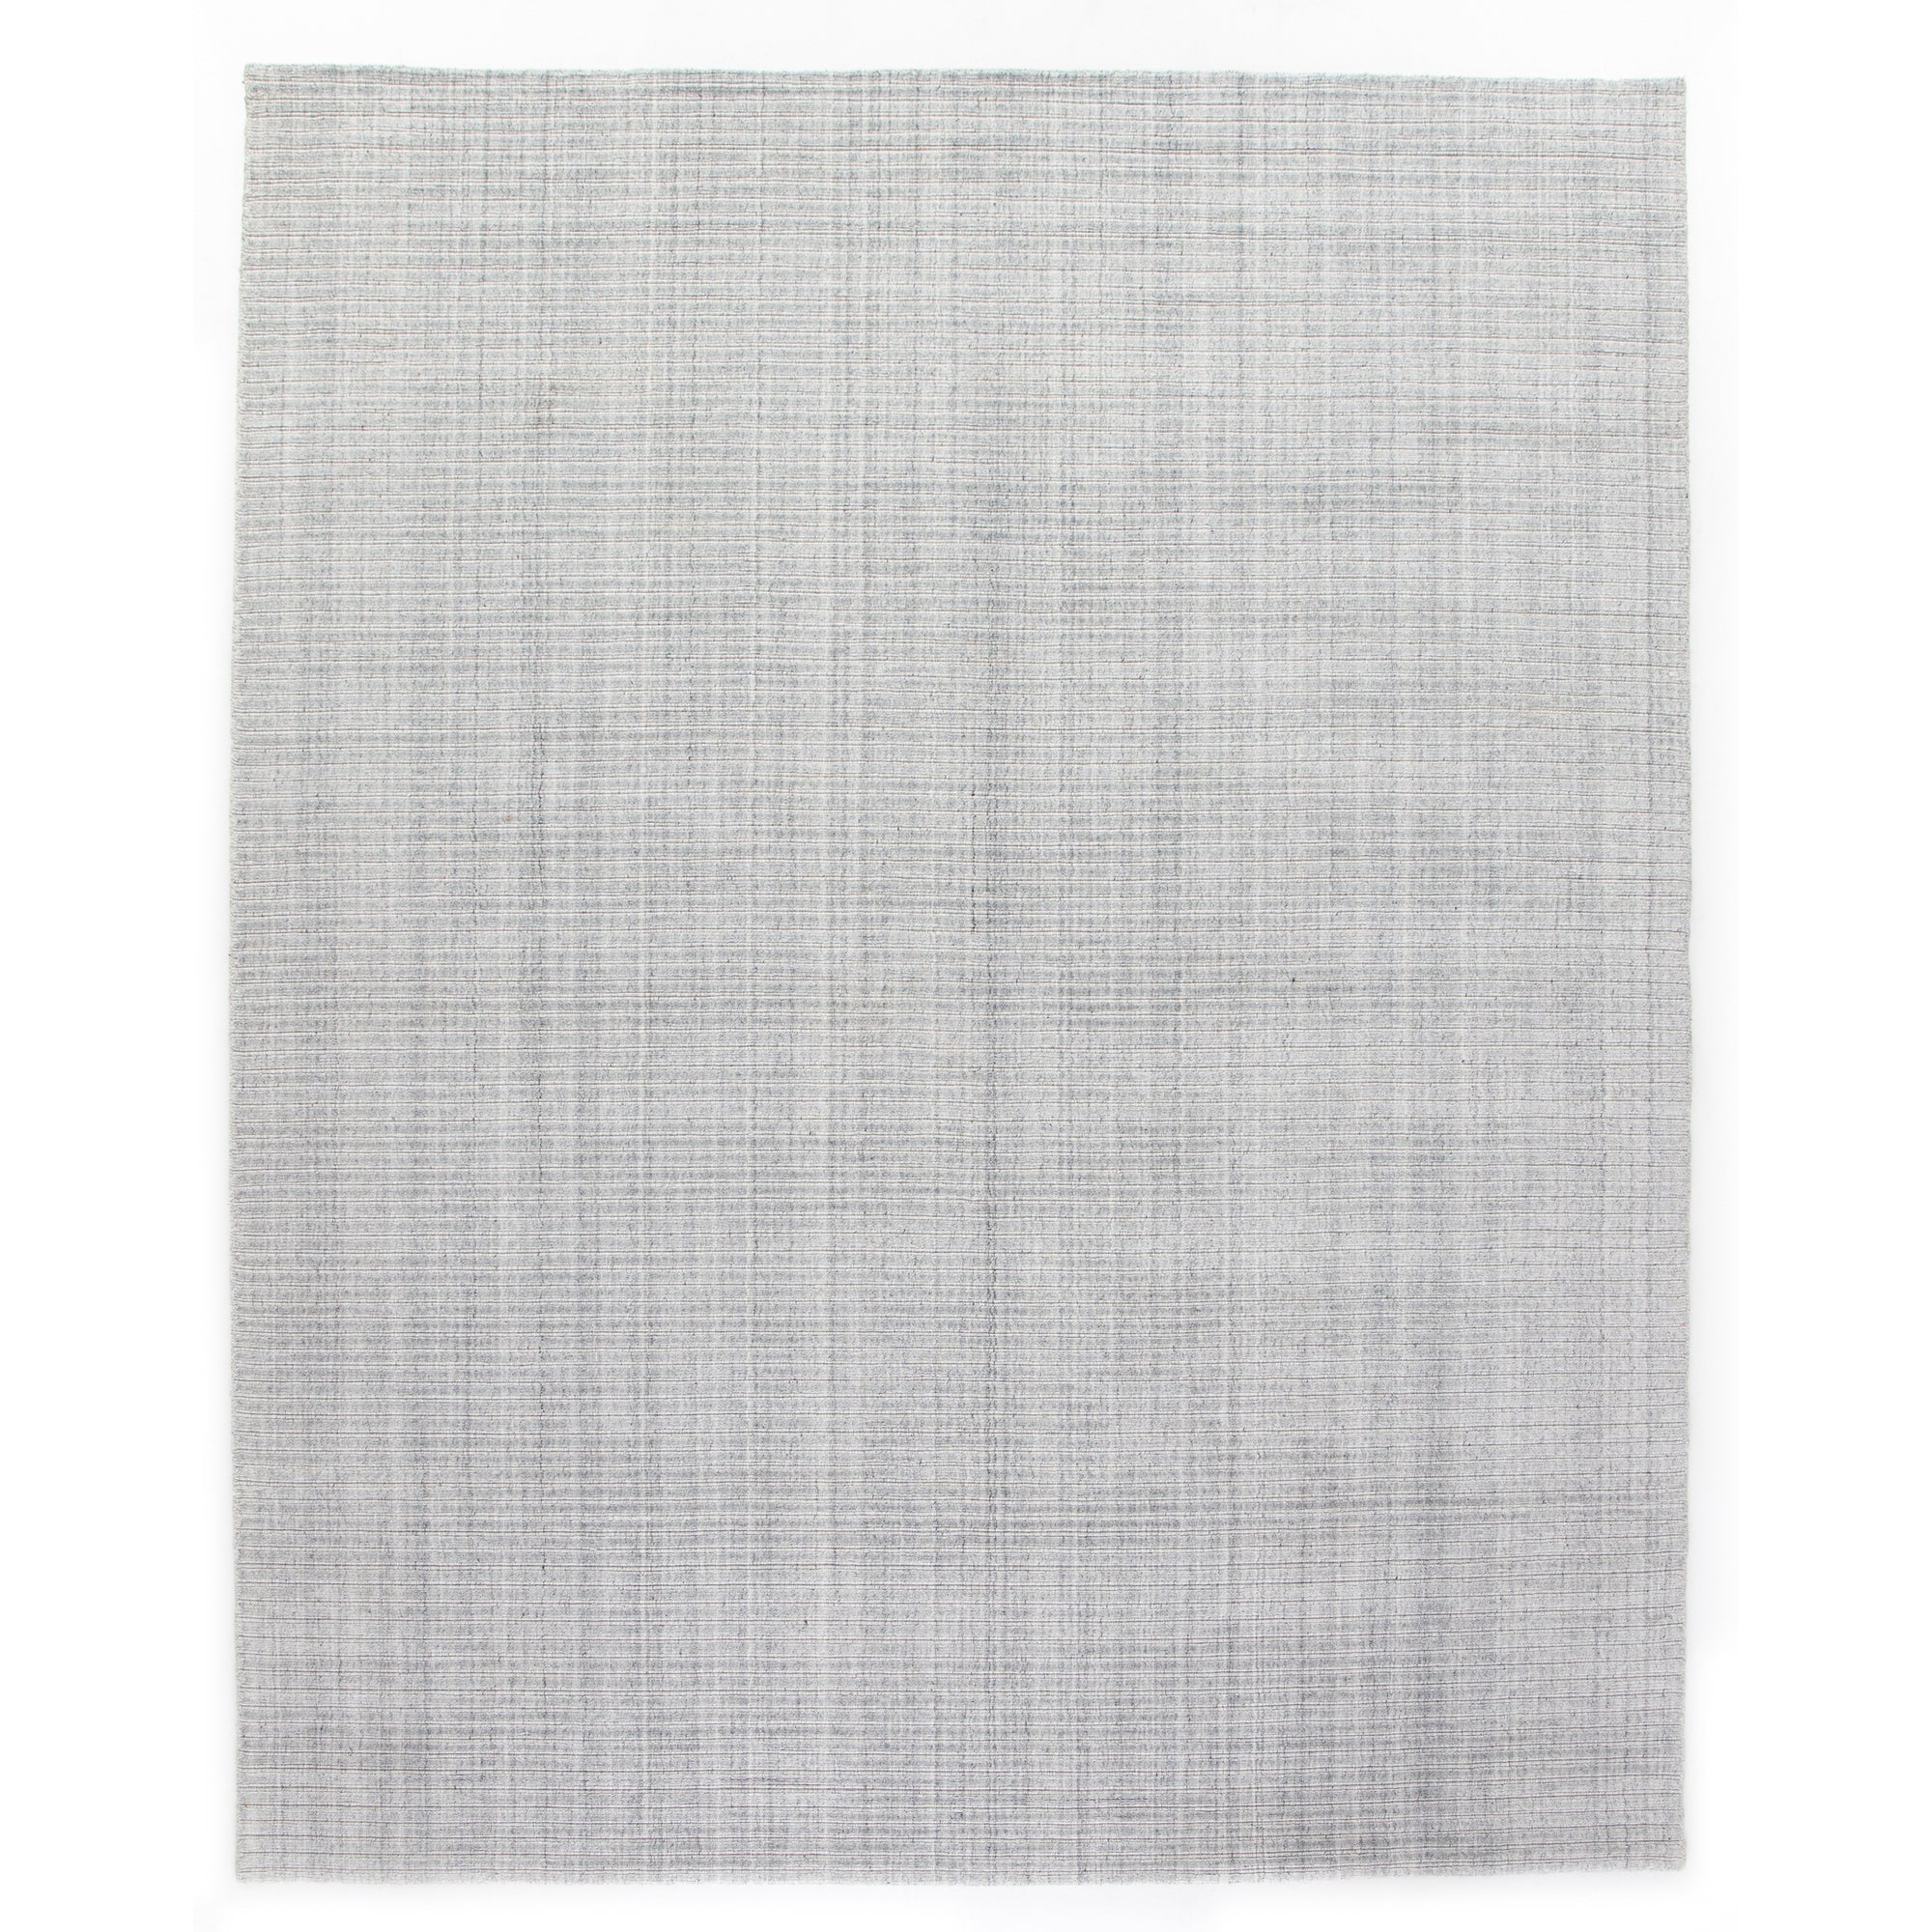 Adalyn Rug, 10x14' - Light Grey